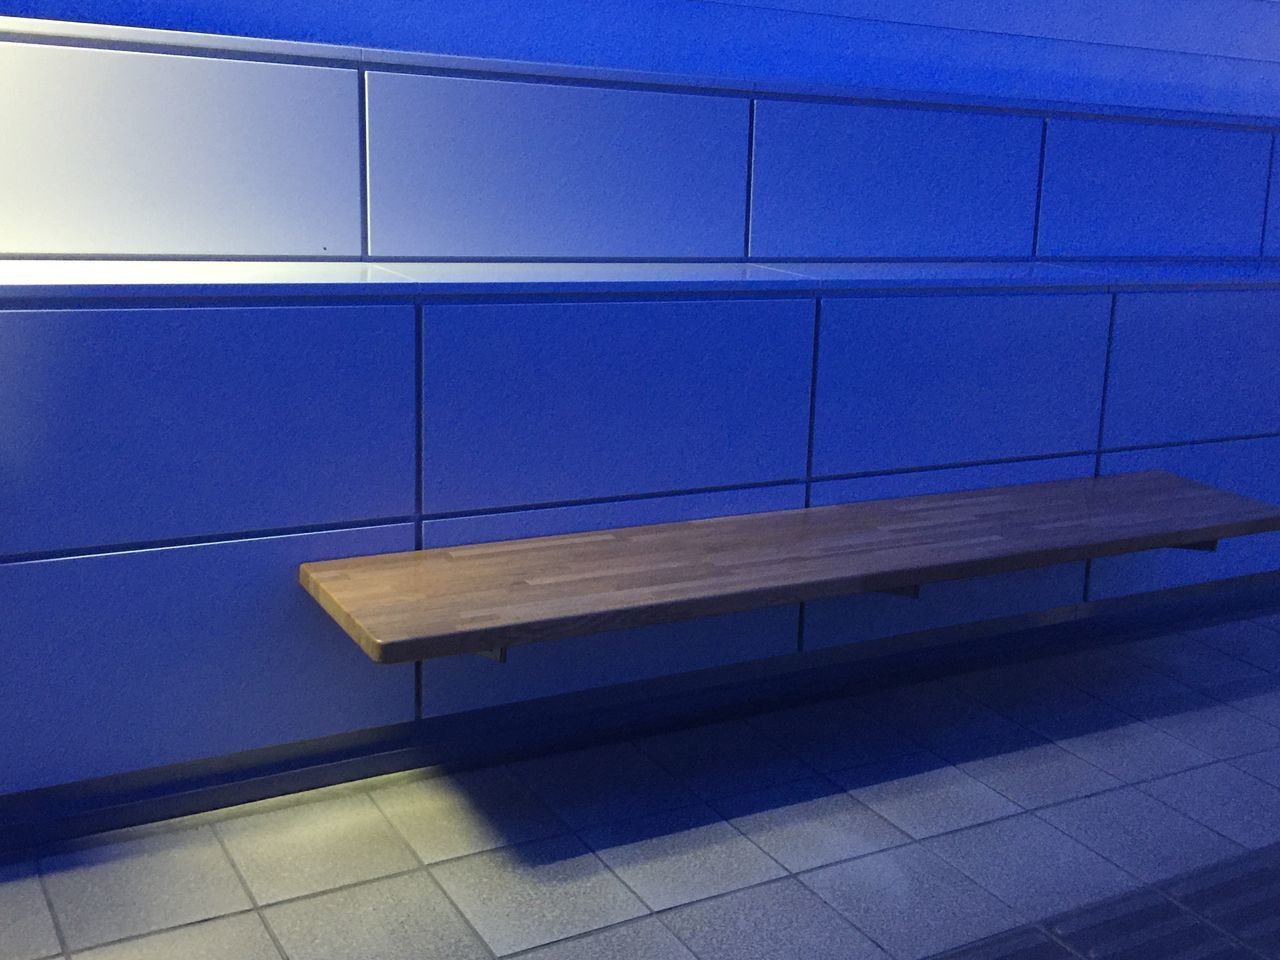 blue, transportation, no people, indoors, architecture, day